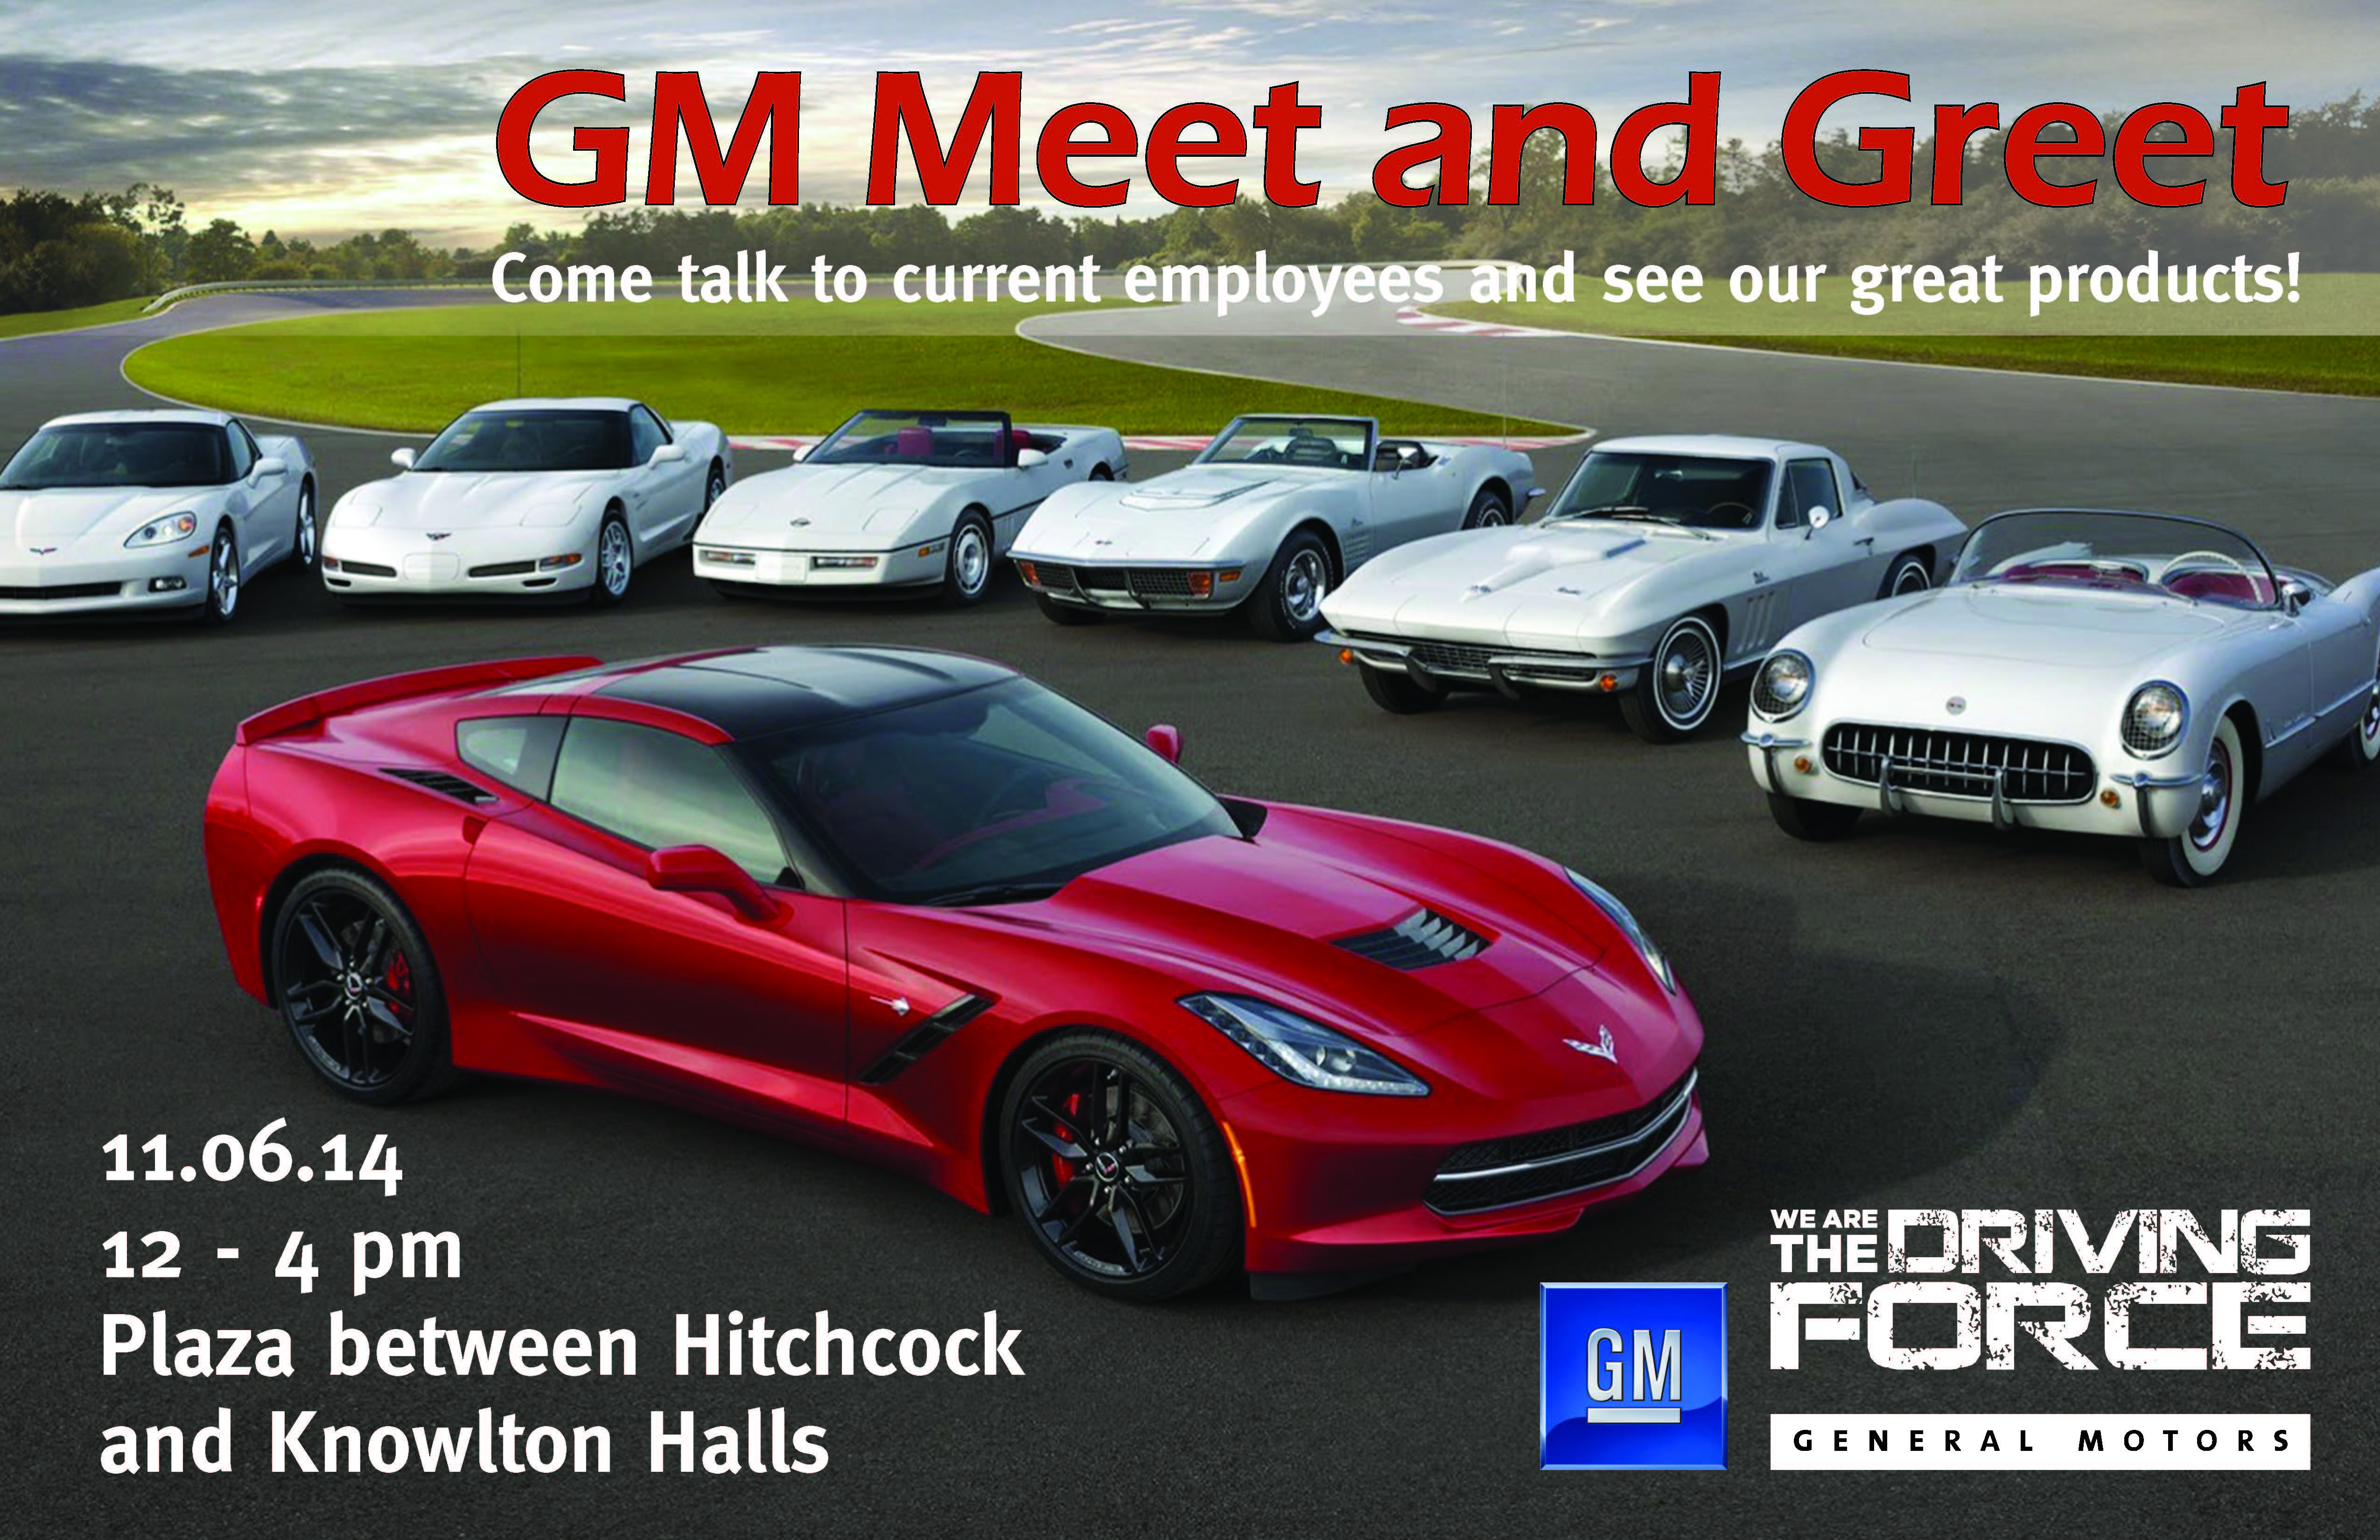 event information with pictures of GM cars